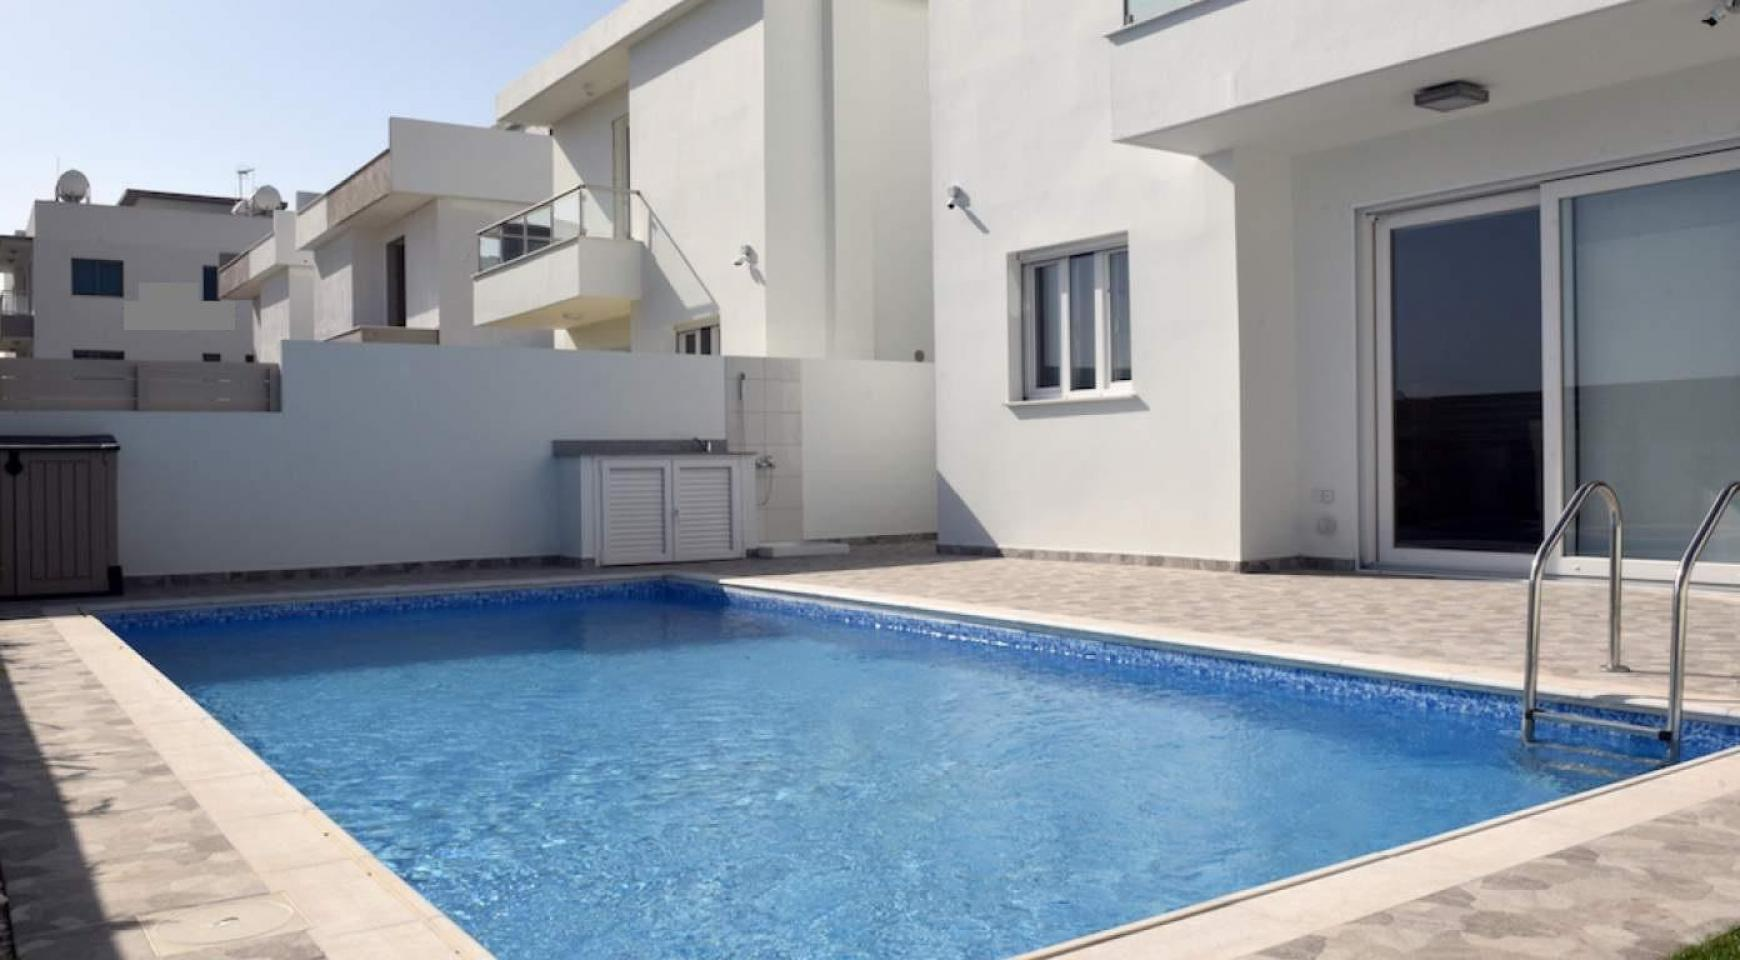 New Modern 4 Bedroom House in Leivadia Area - 6